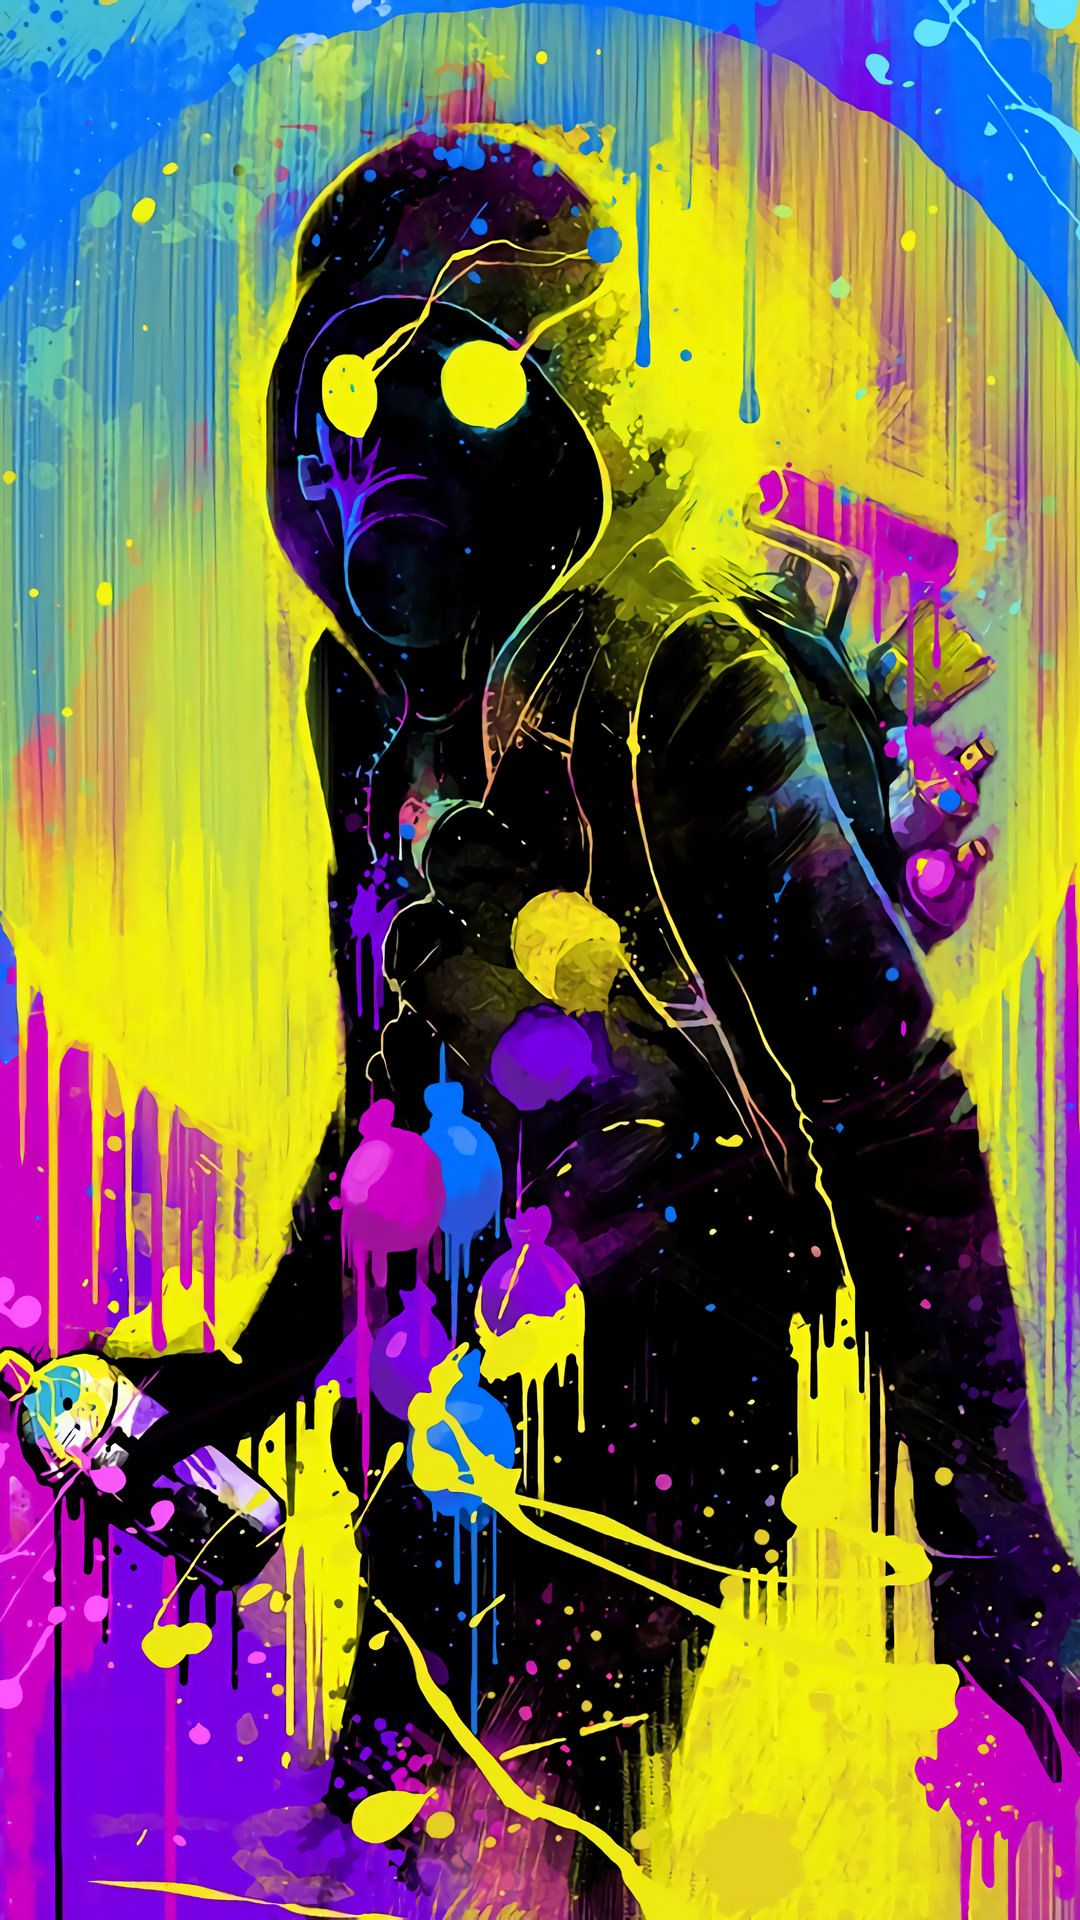 Fashion style Graffiti Cool art wallpaper for lady